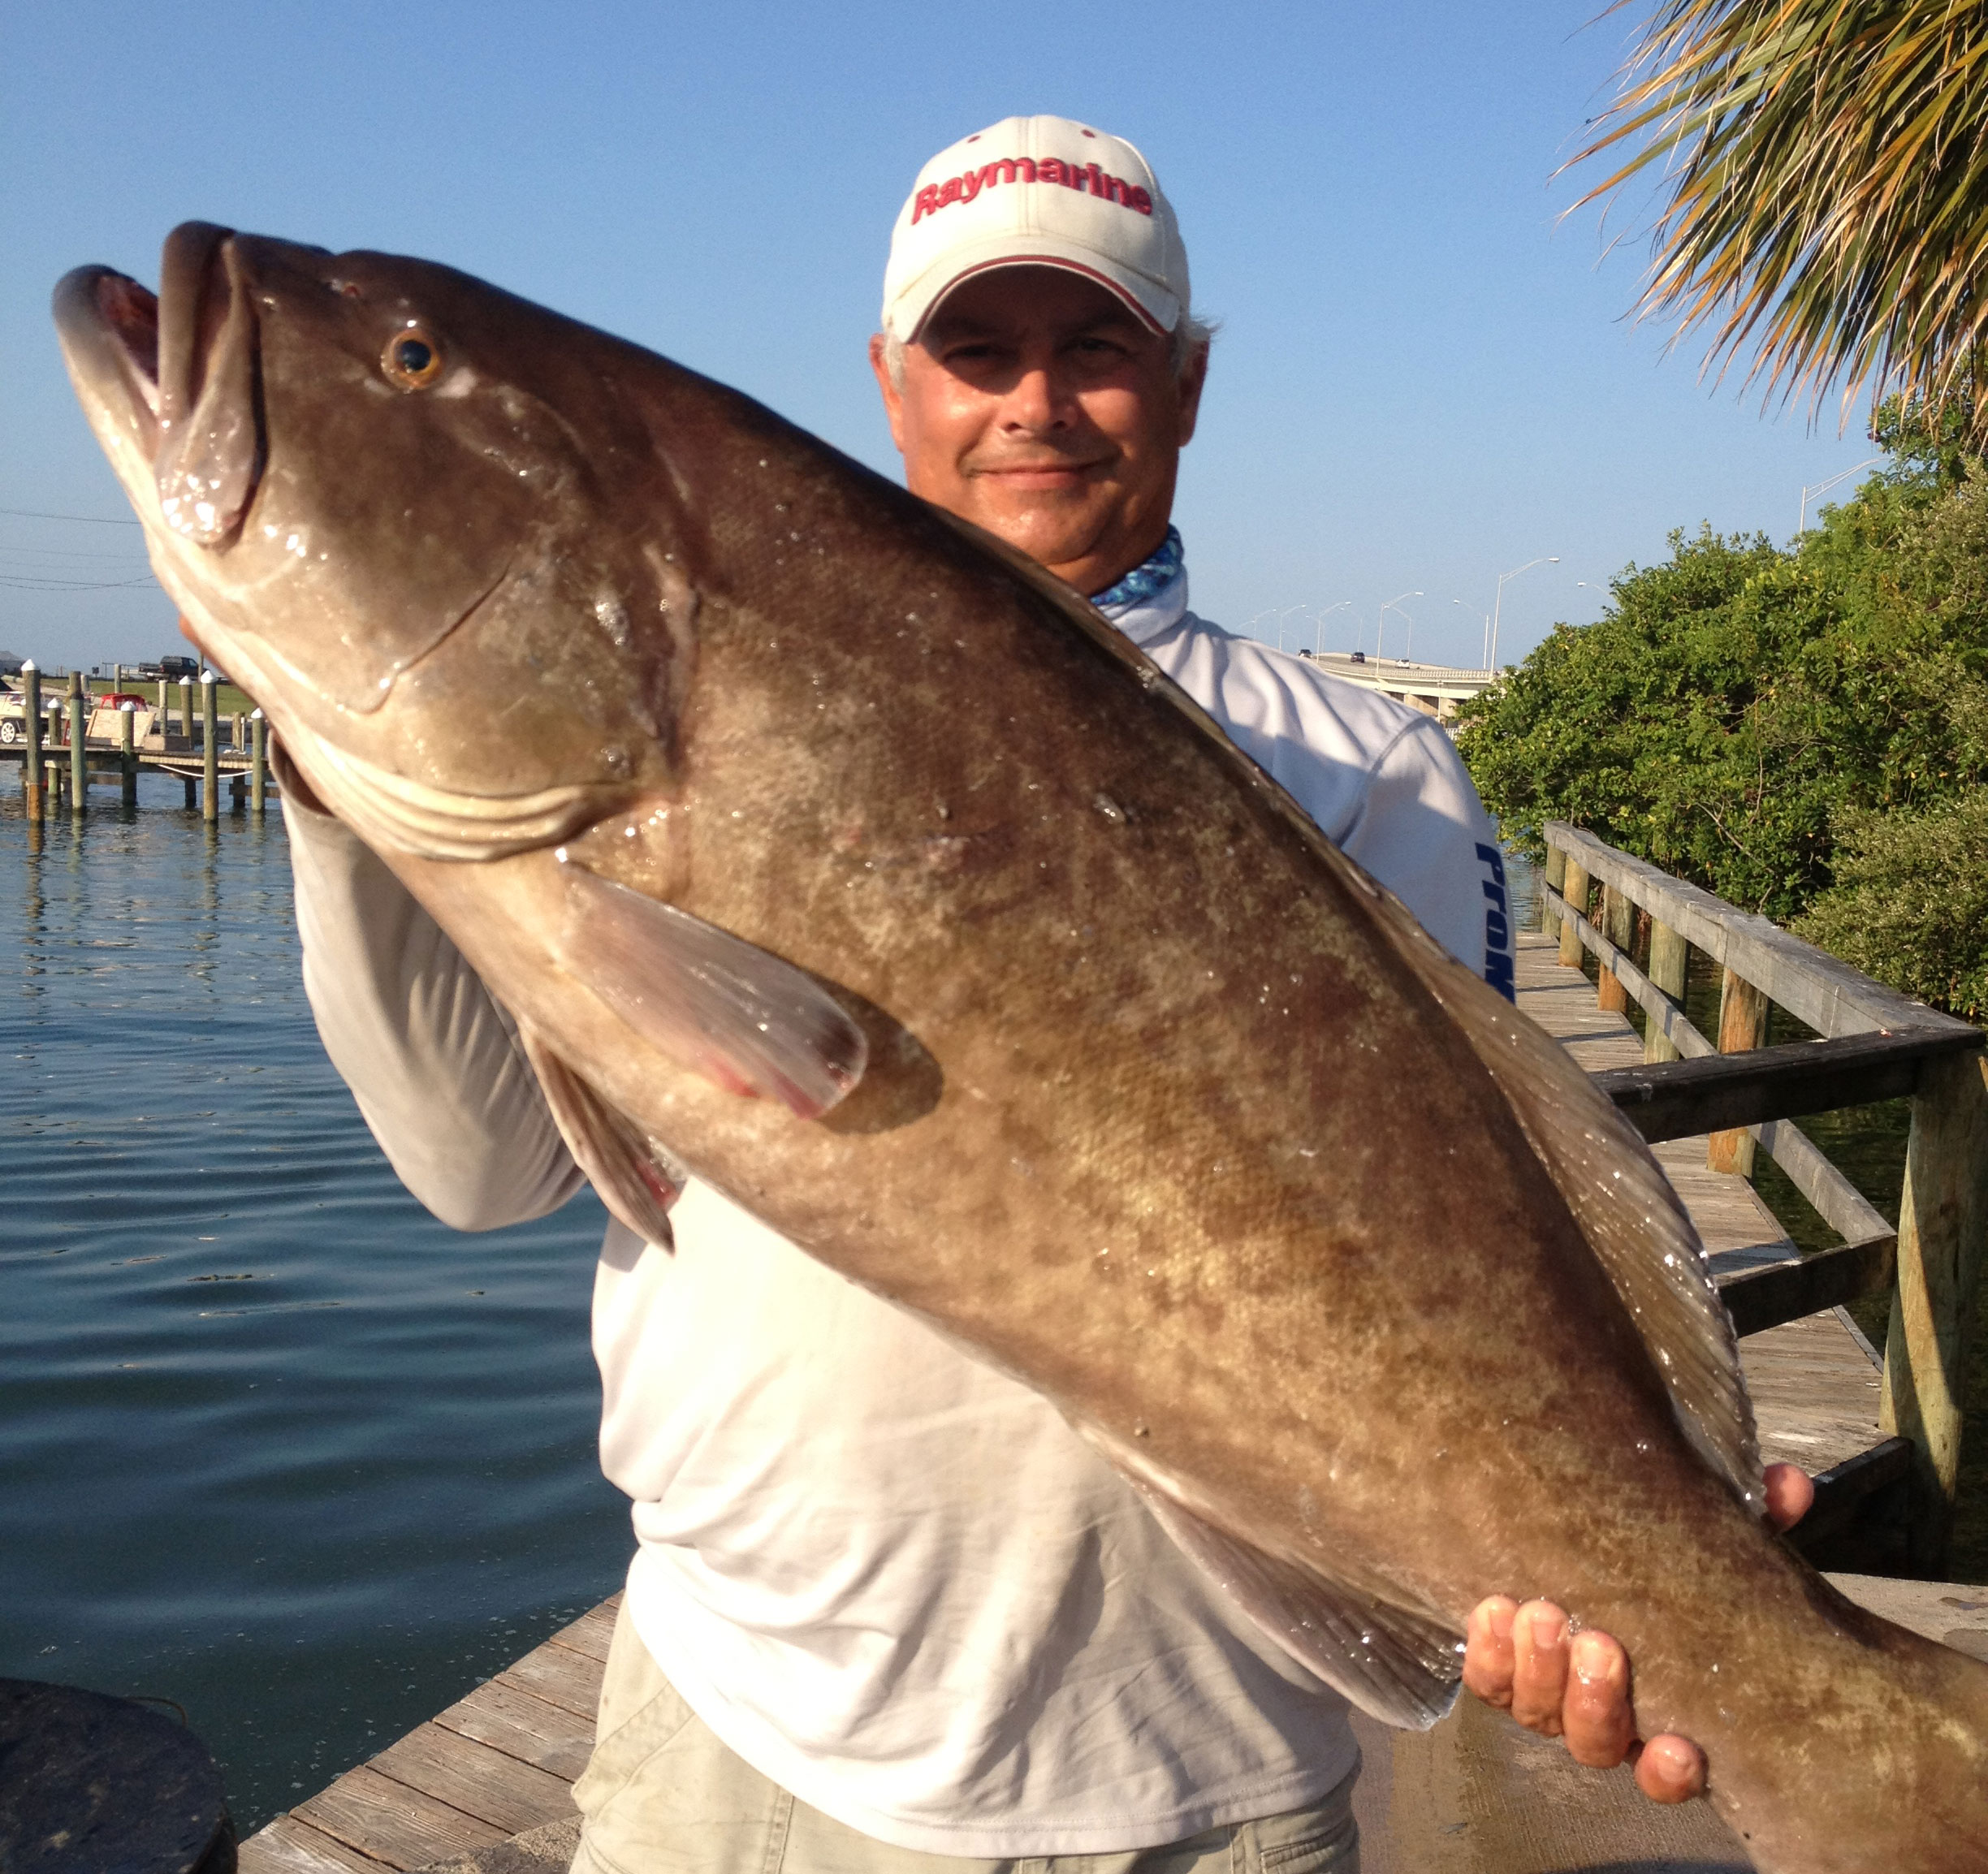 Webinar: How to Use Contours to Find Saltwater Fish